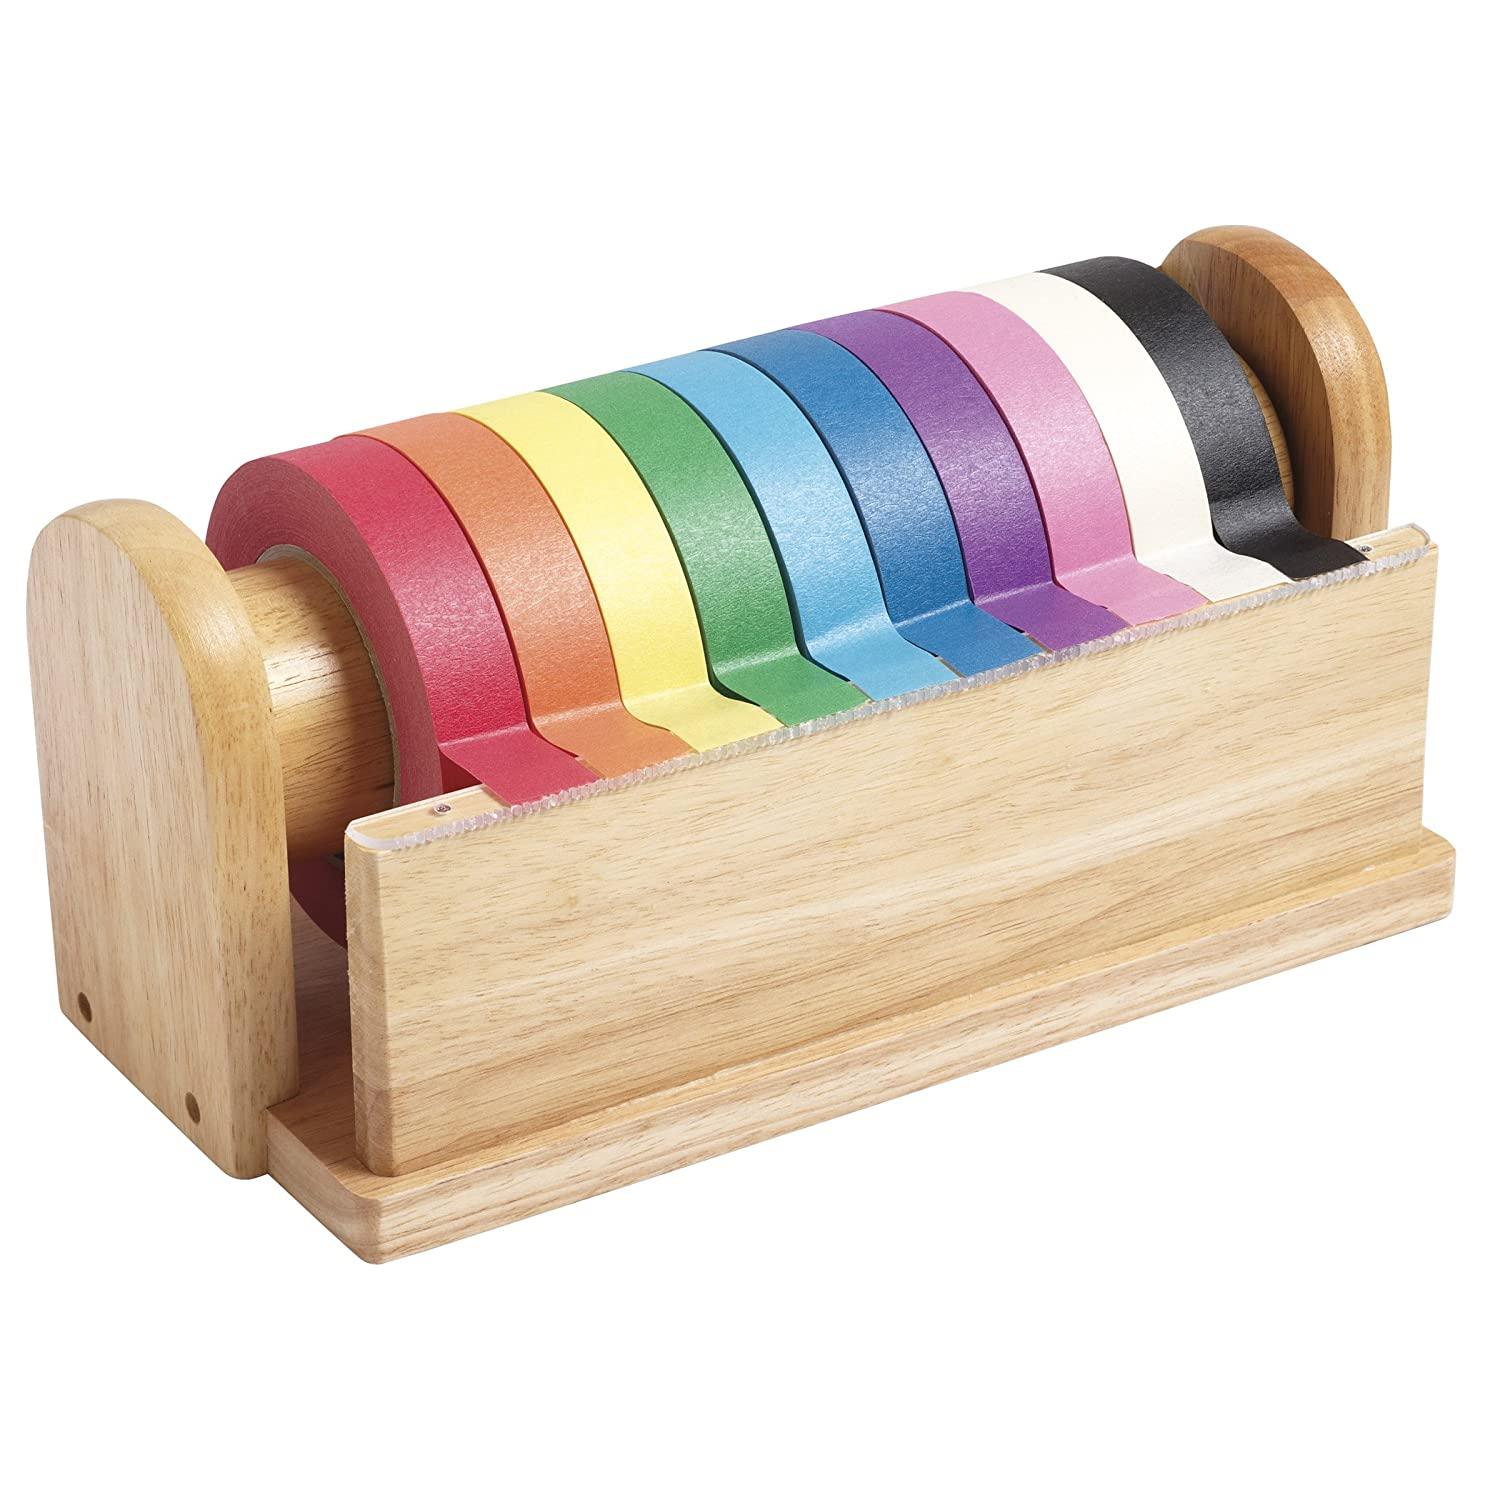 Wooden Dispenser with 10 Assorted Color Tape Rolls